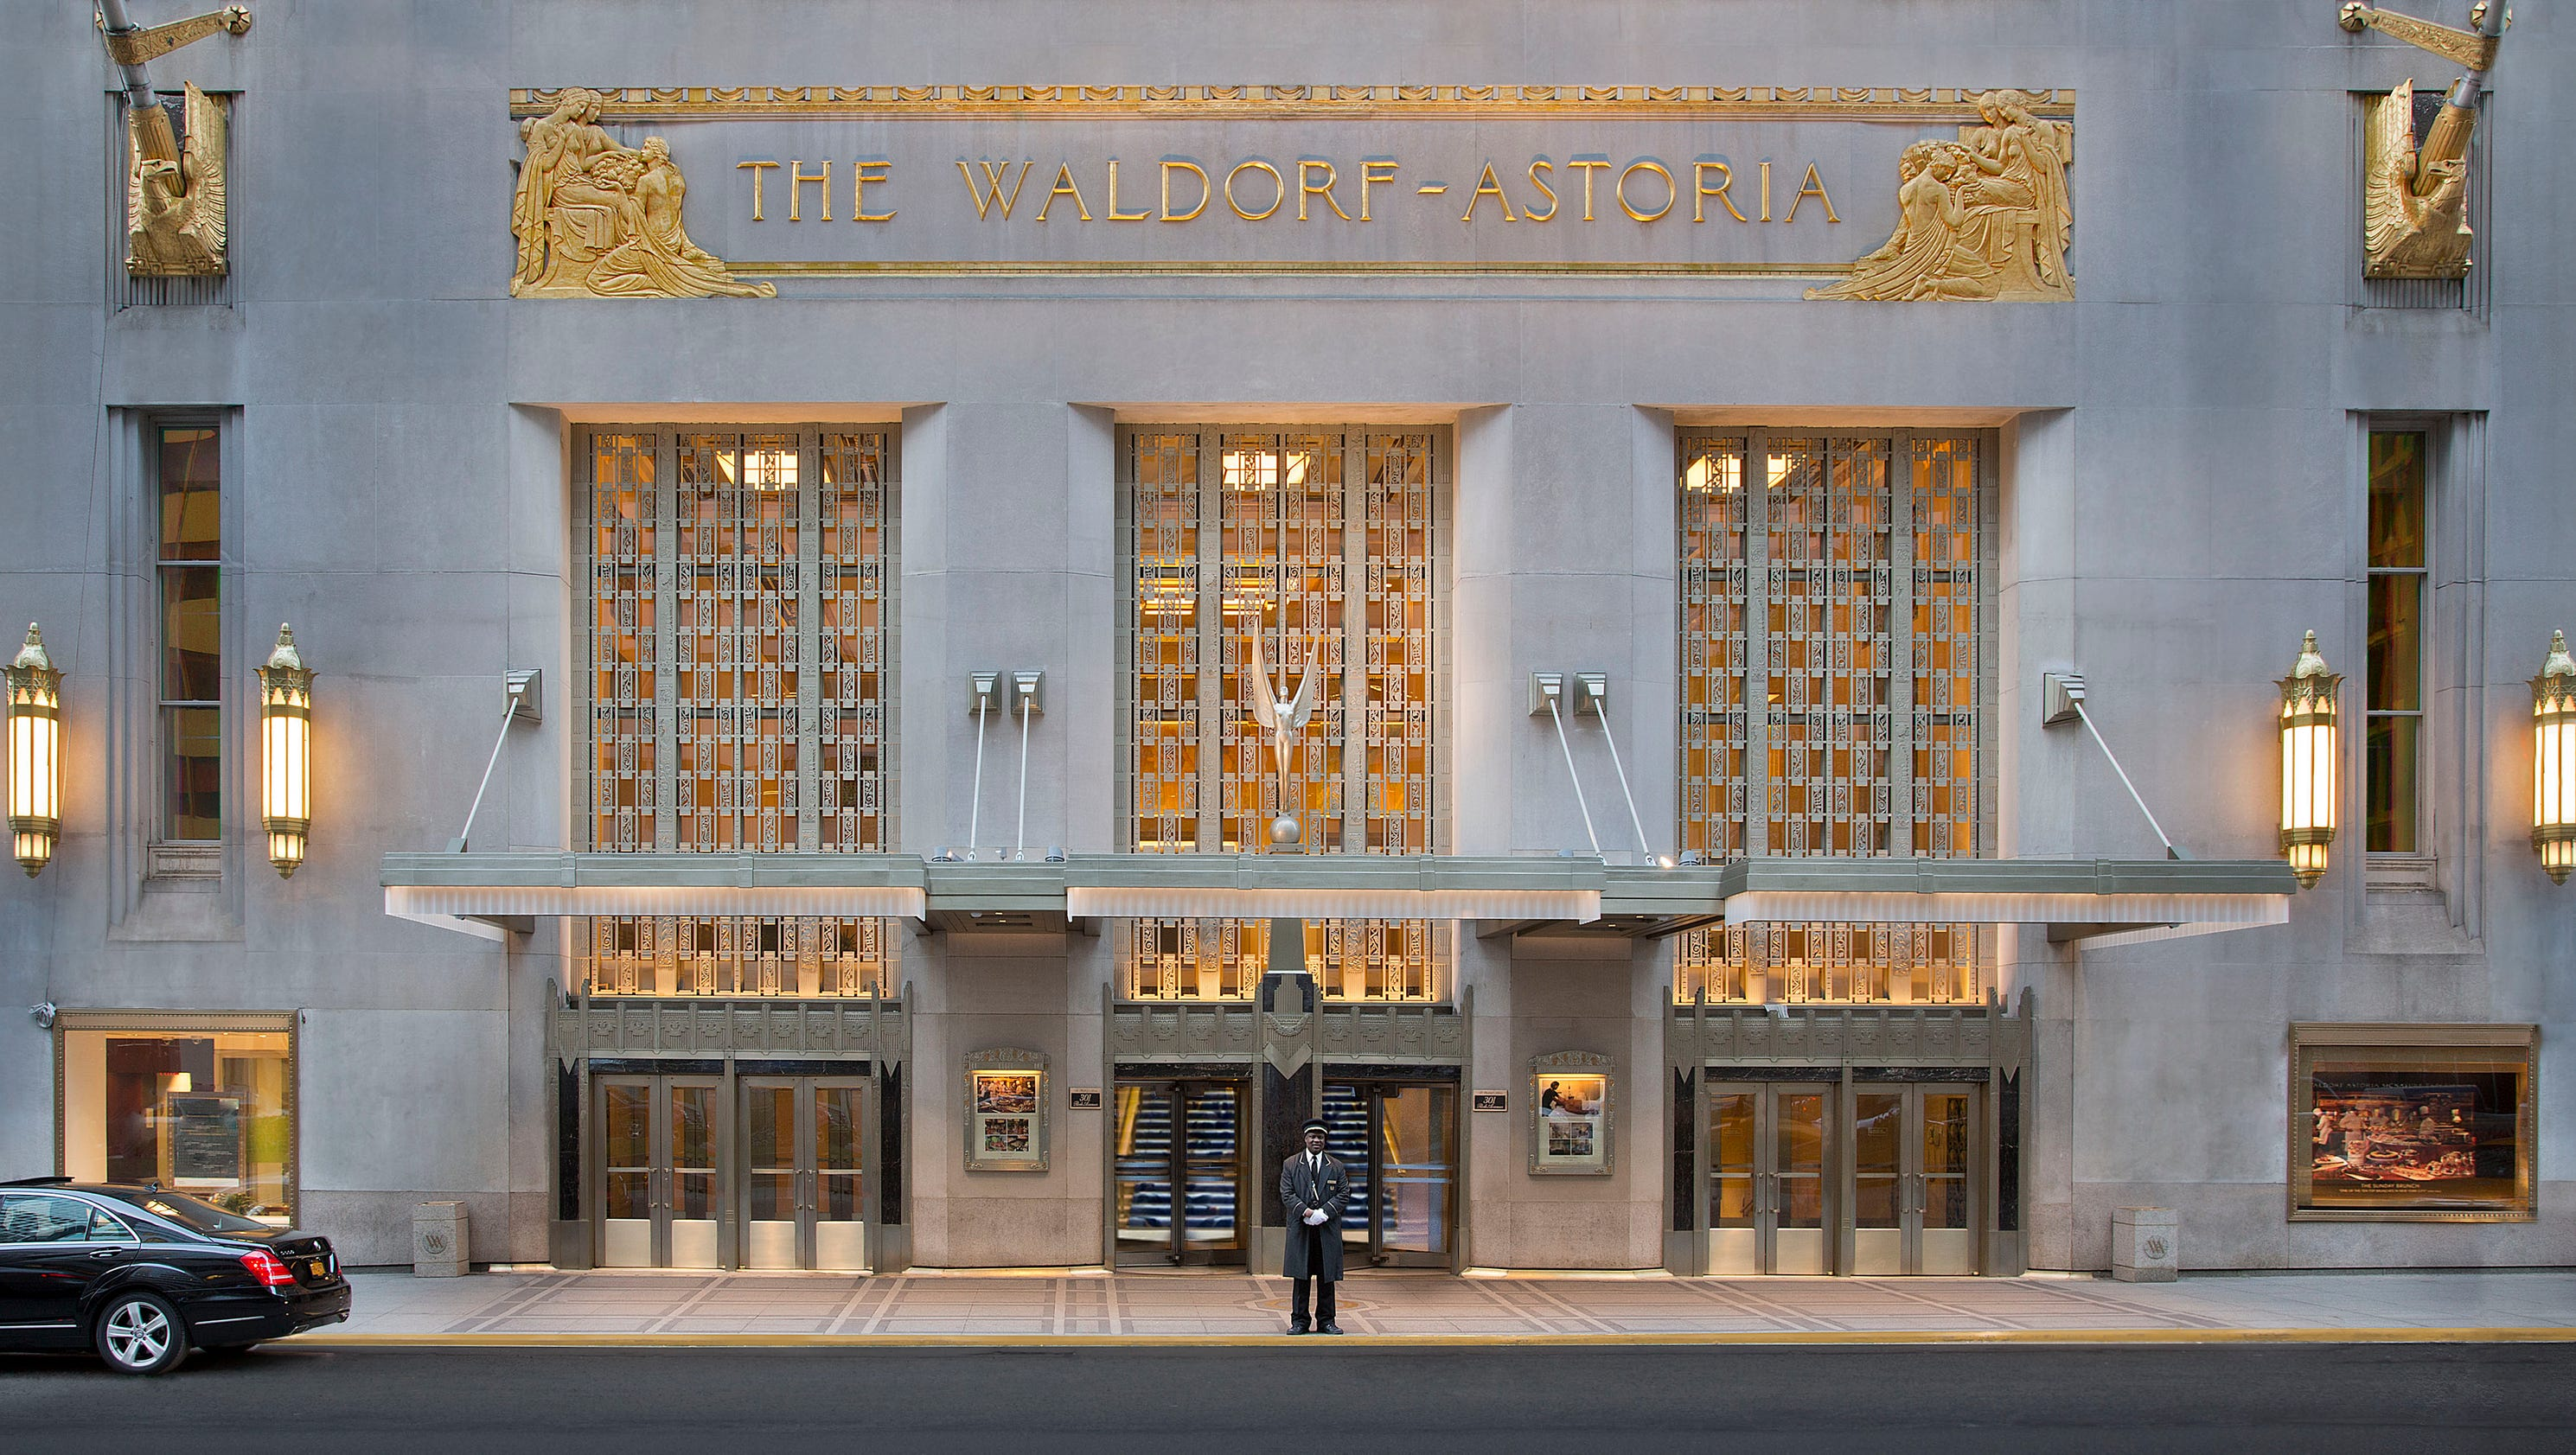 Waldorf astoria new york to shut down today for renovations for Waldorf at home